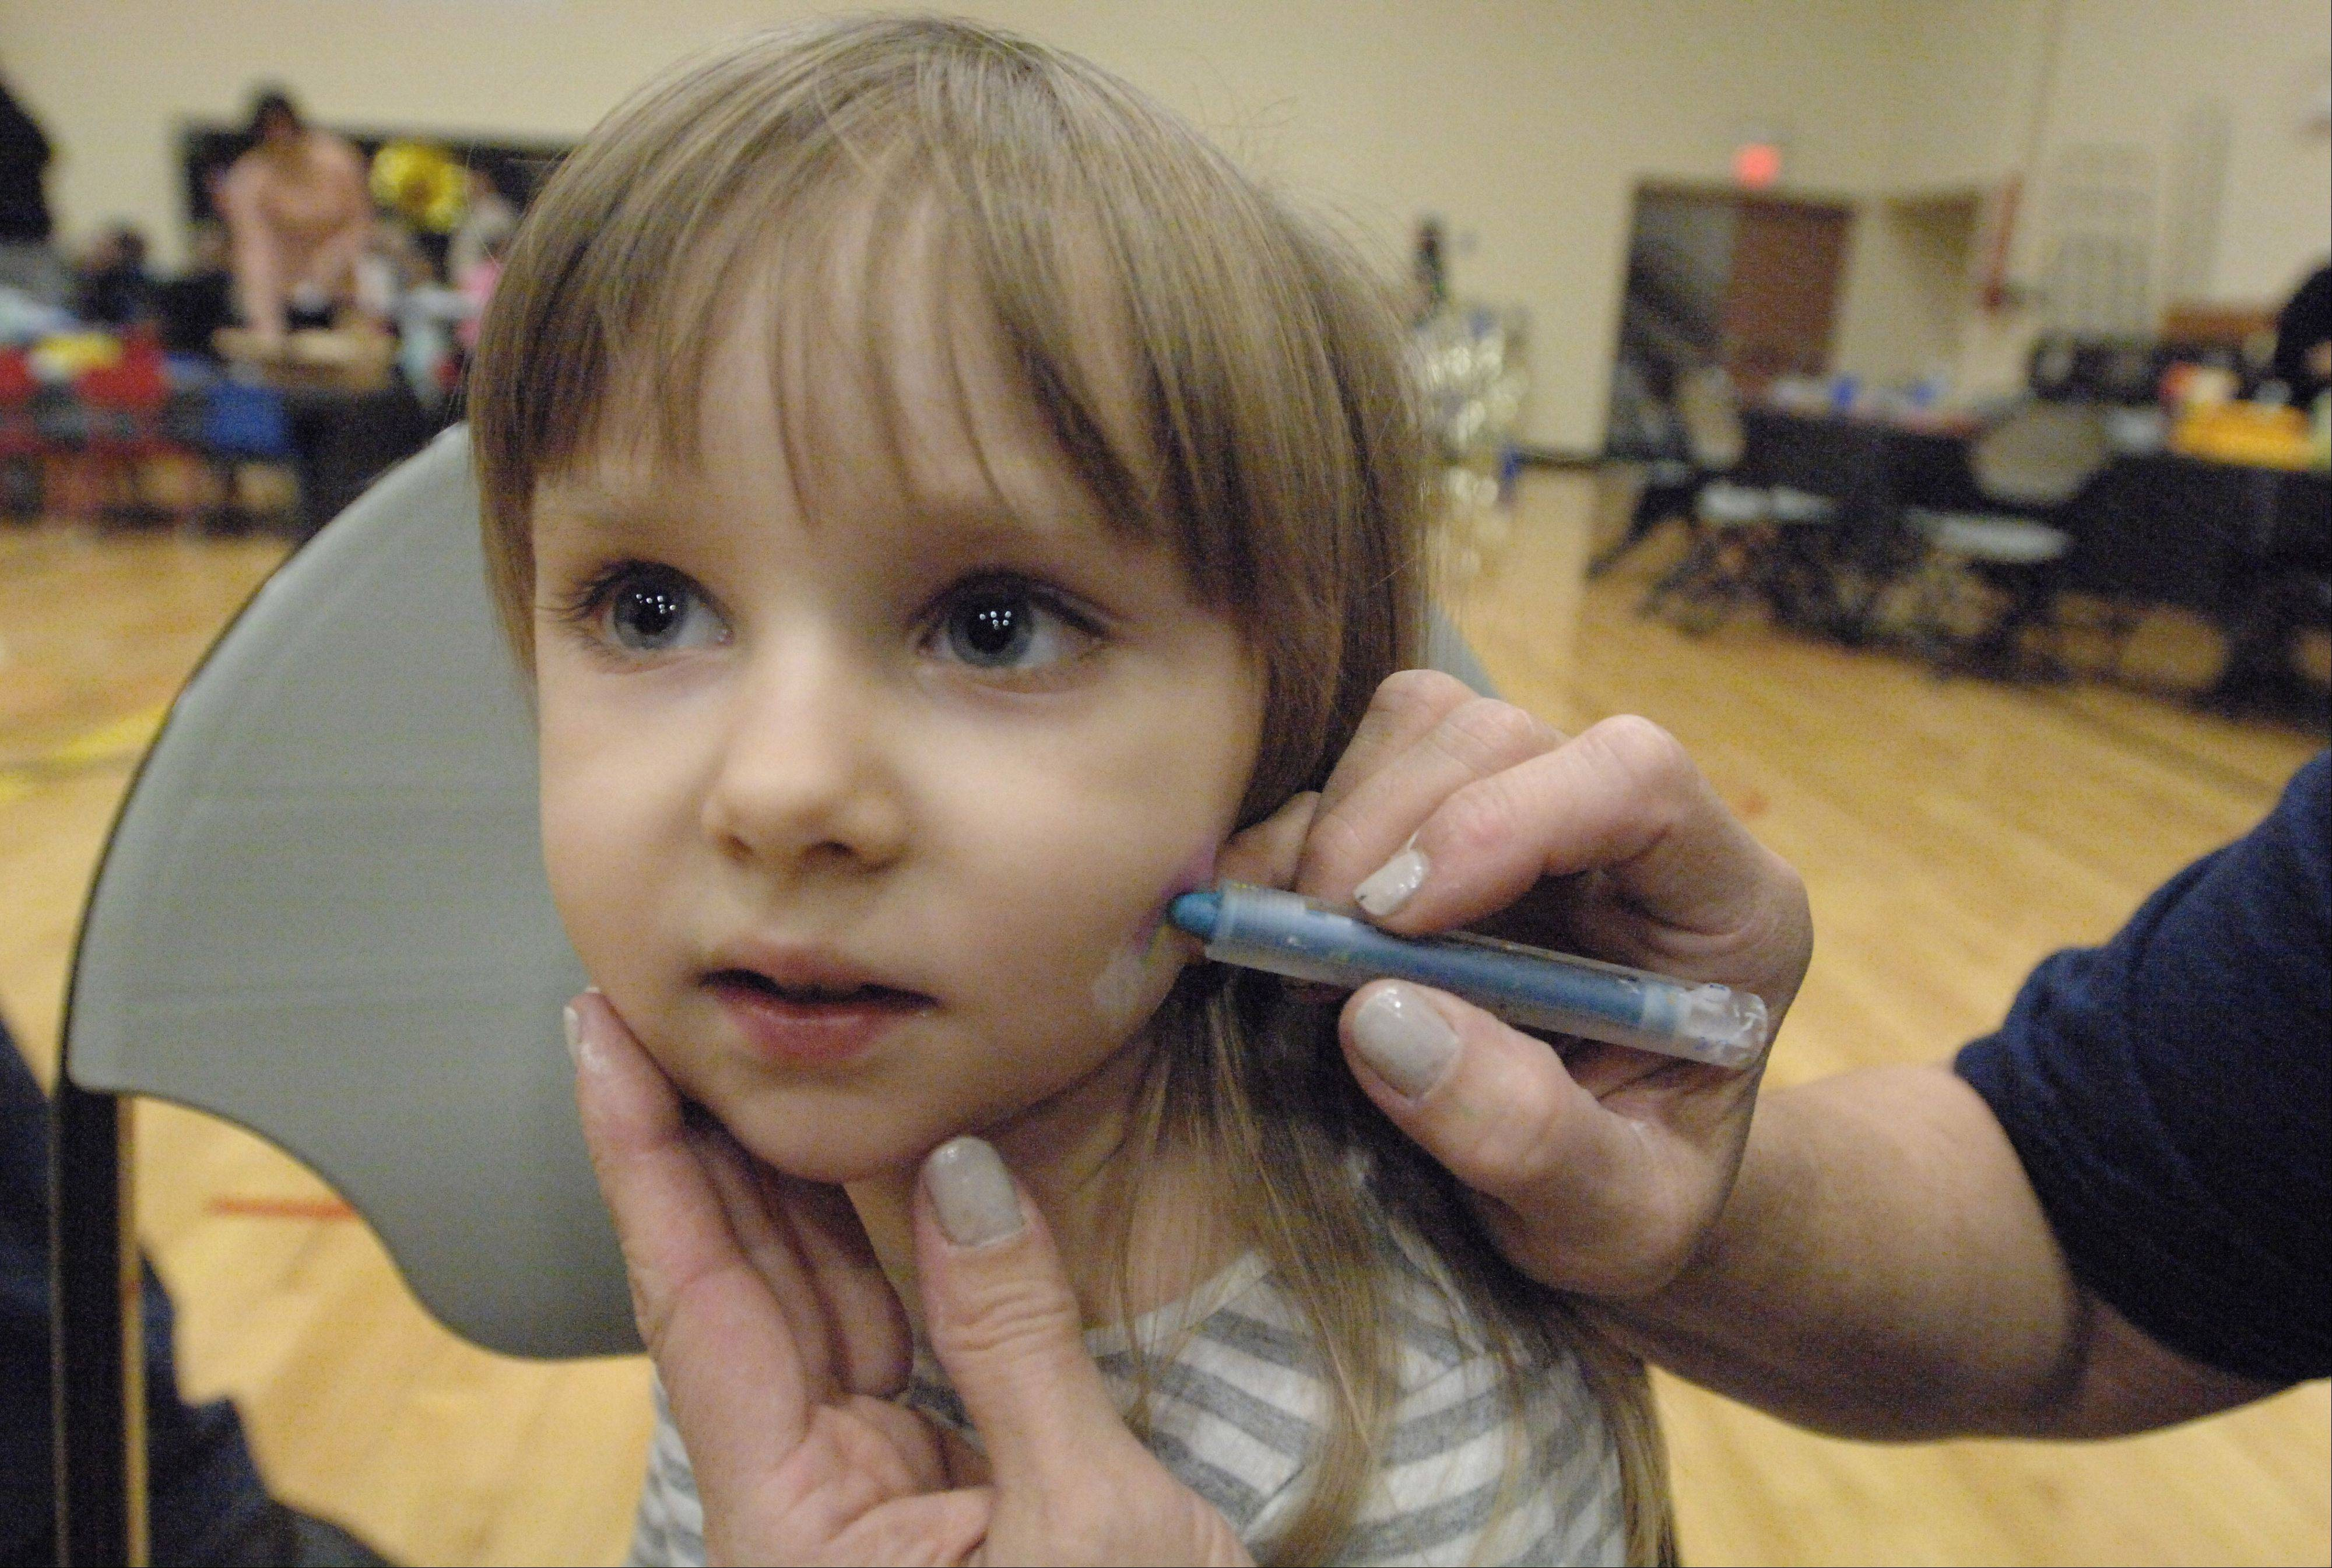 Evelyn Mosena, 3, of Carol Stream, gets her face painted Saturday at the Carol Stream Park District's Teenie Weenie New Year's Eve Ball.